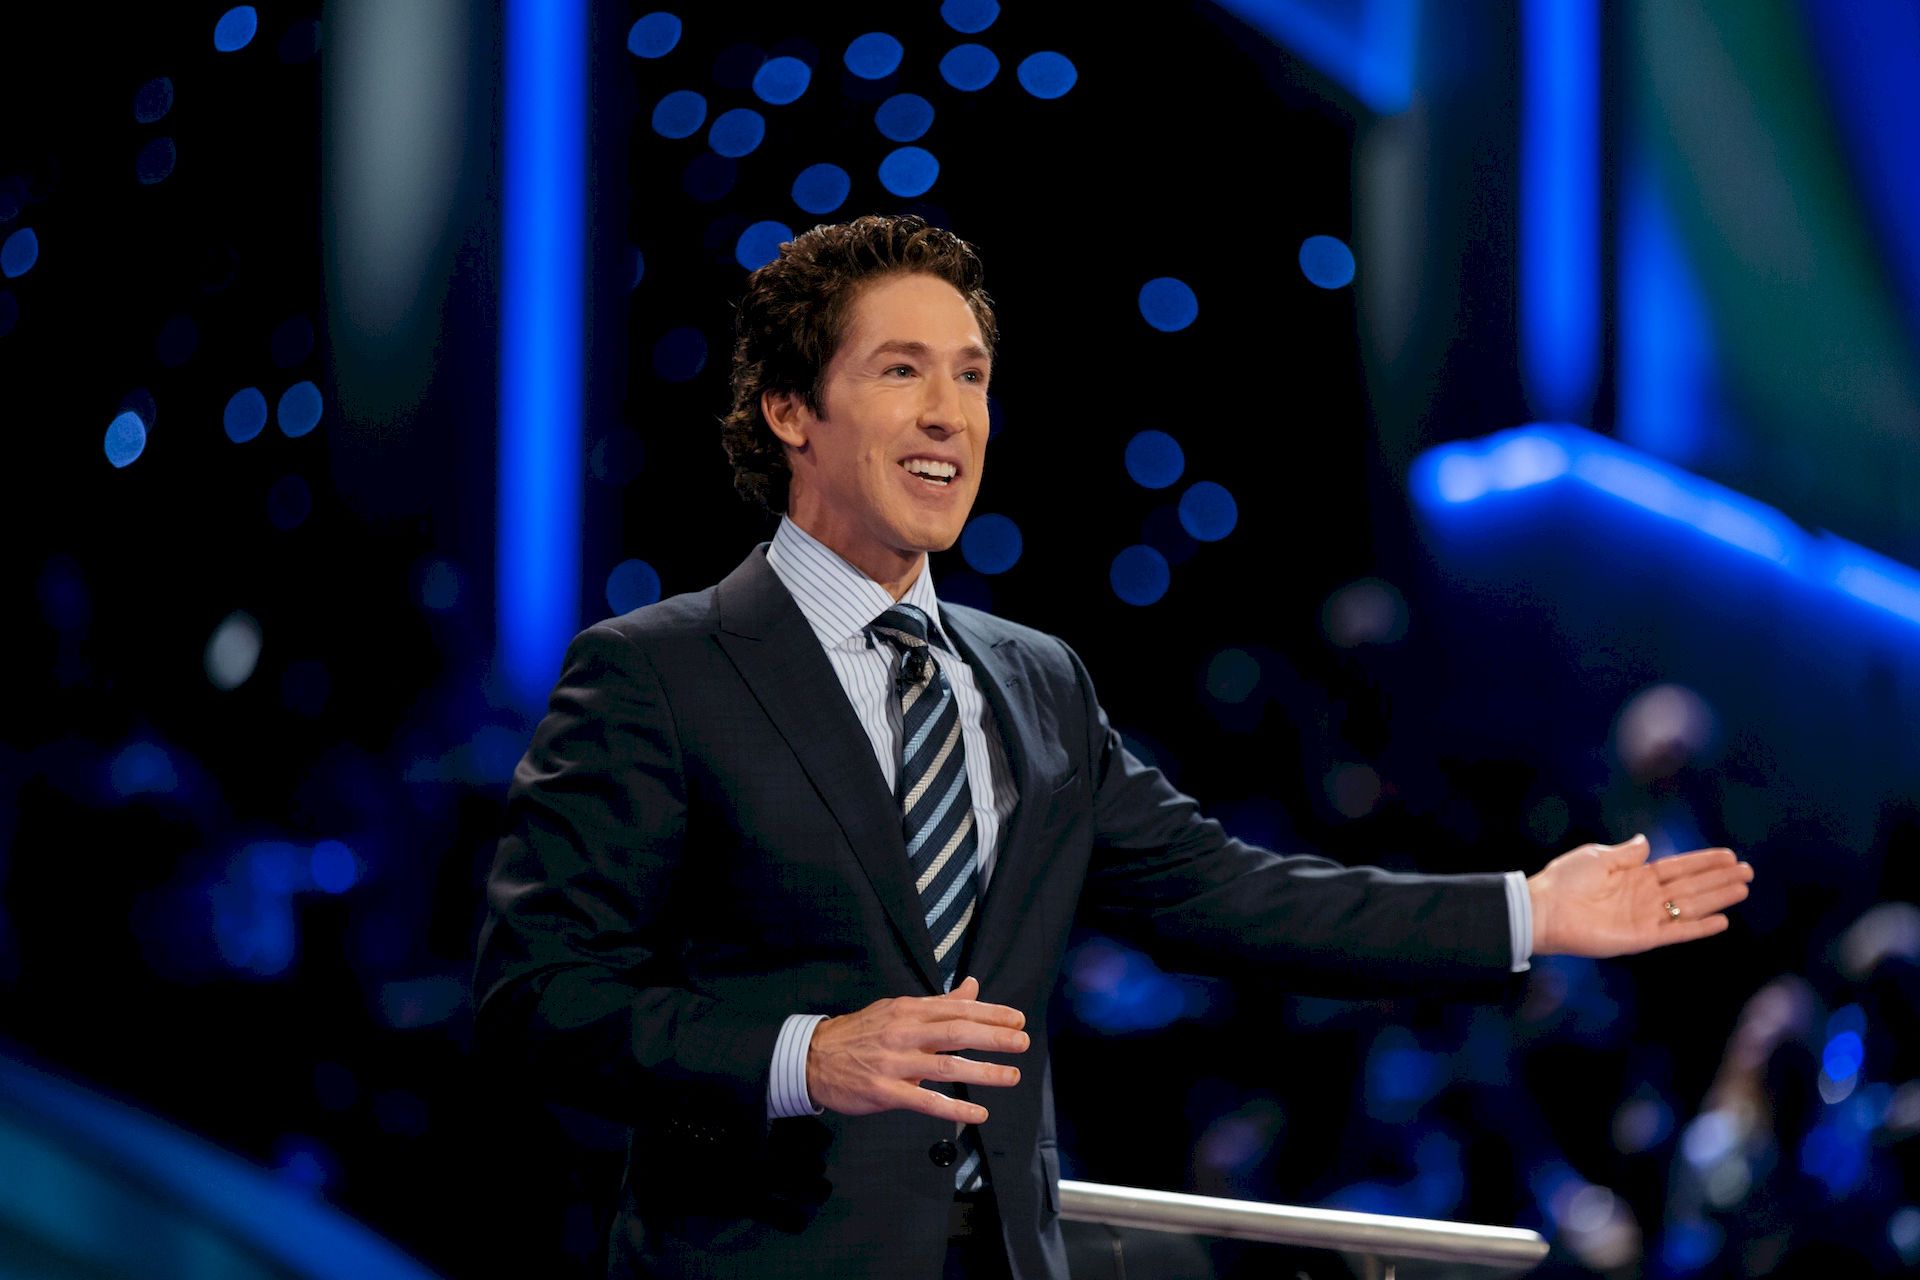 Photo of Joel Osteen: Televangelist and author from the United States